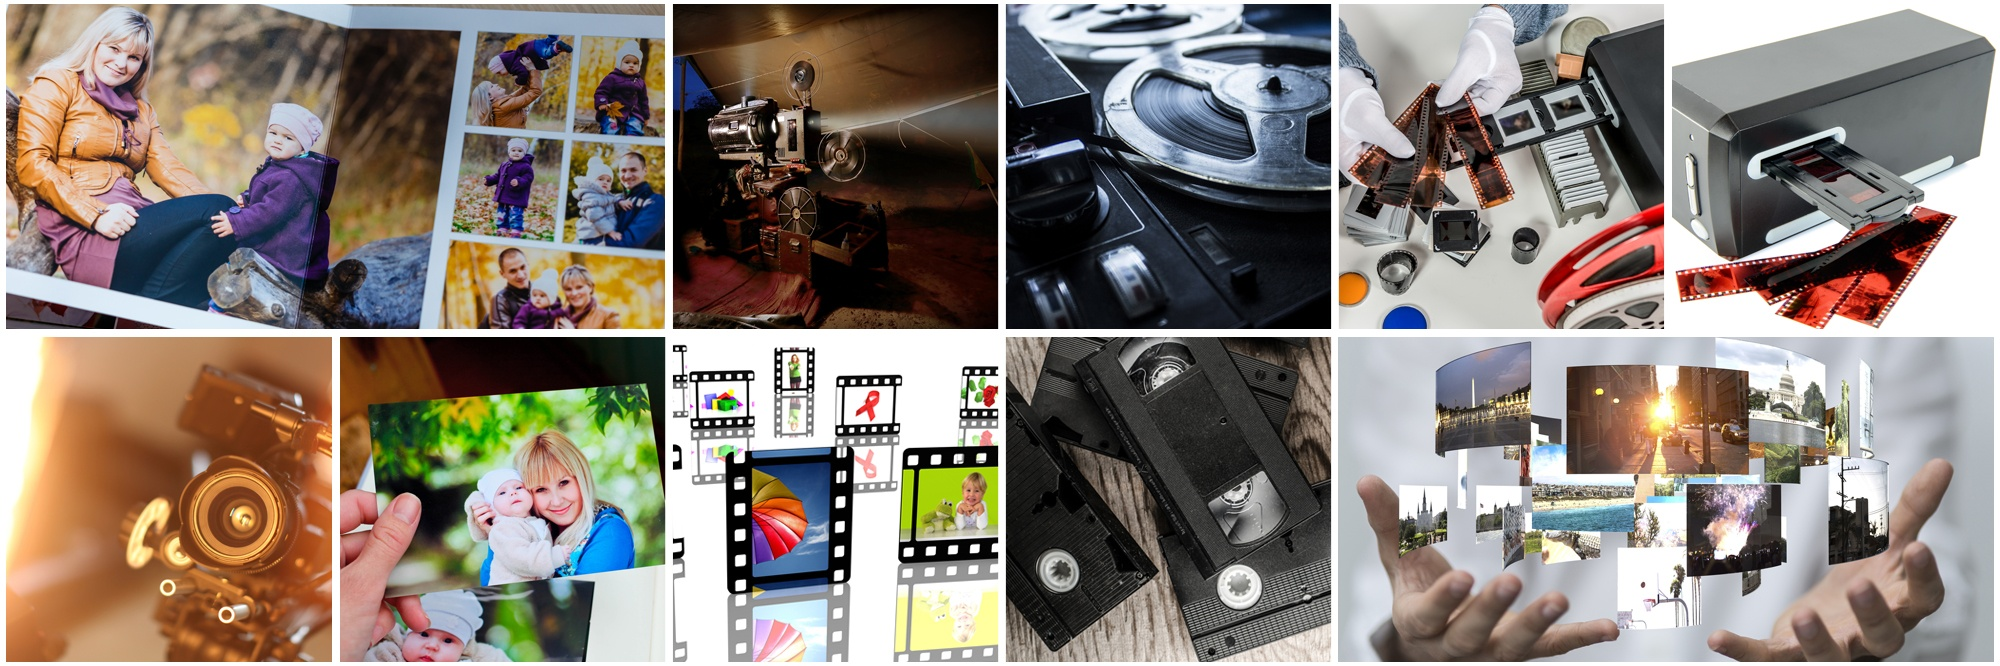 When Should You Digitize 8mm and 16mm Film? Yesterday!